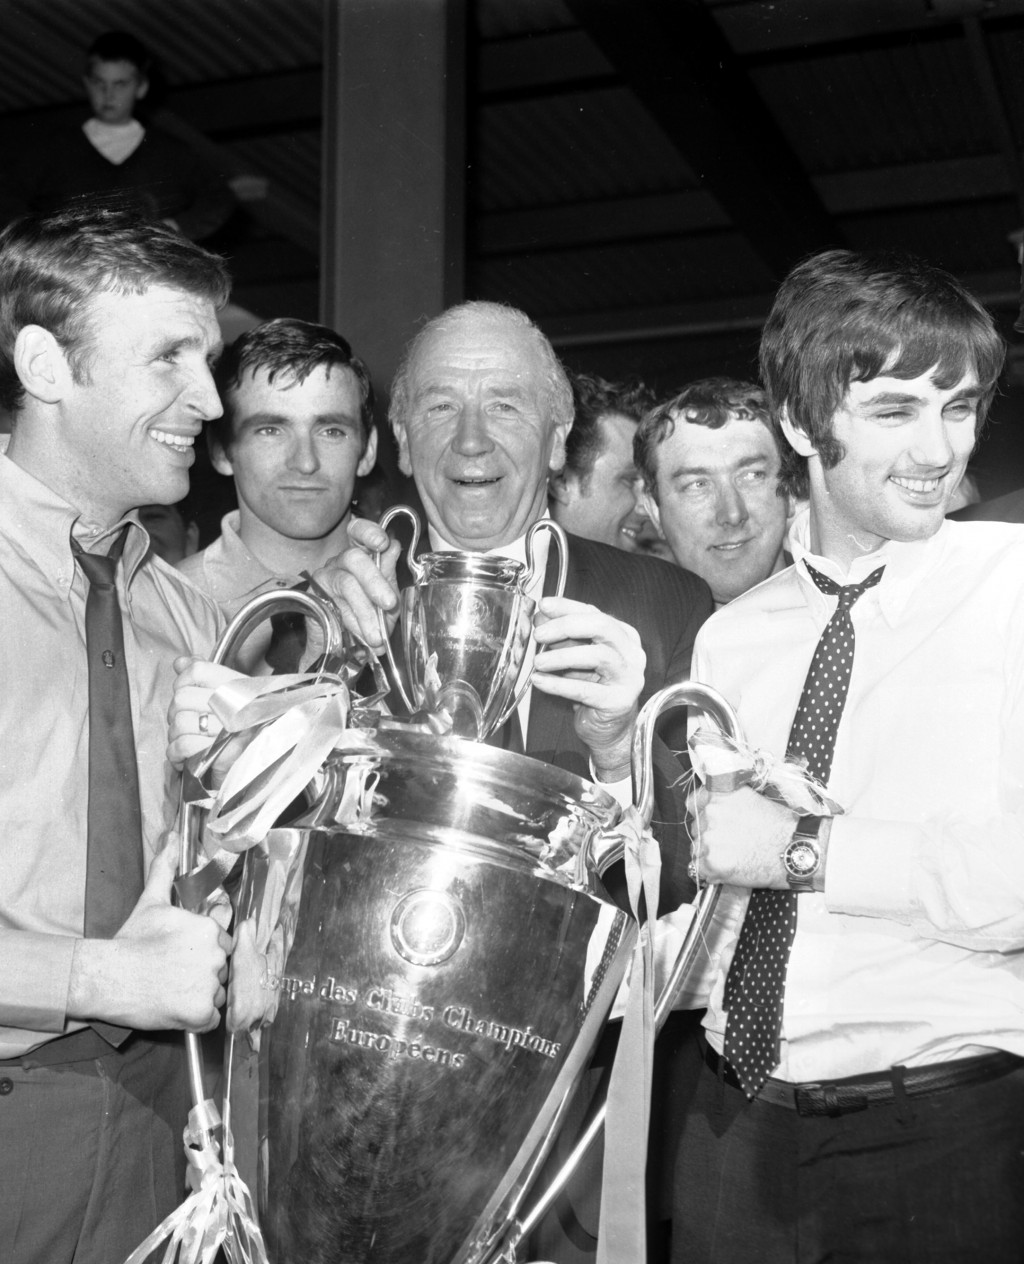 FILE - In this May 30, 1968 file photo, Pat Crerand, left, and George Best, right, of Manchester United hold the European Cup with their manager Matt